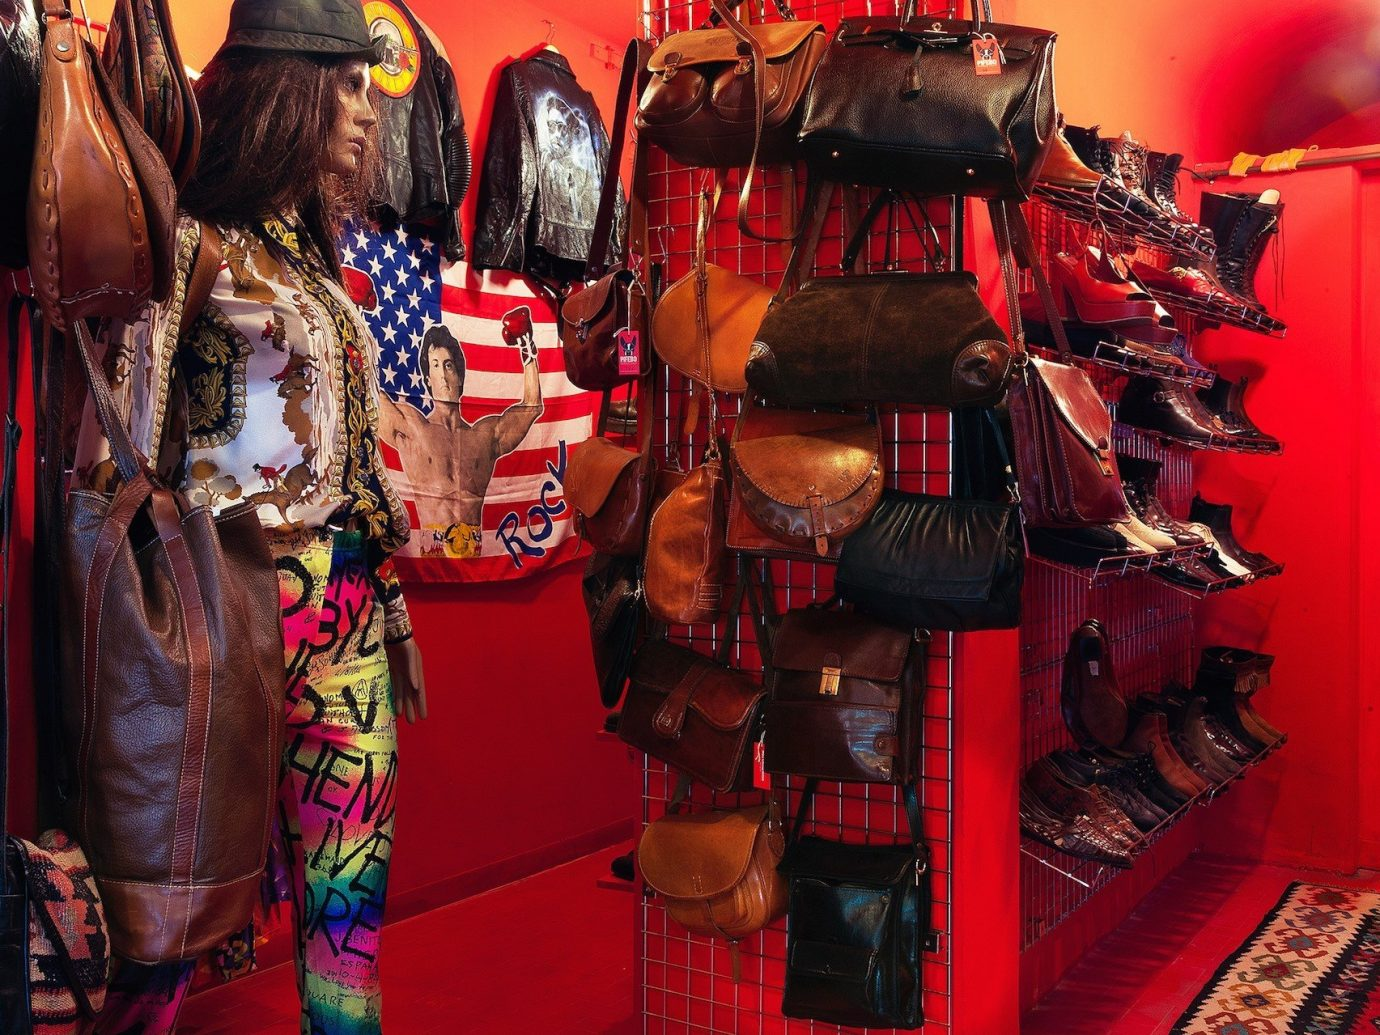 Trip Ideas indoor costume items colorful cluttered Shop